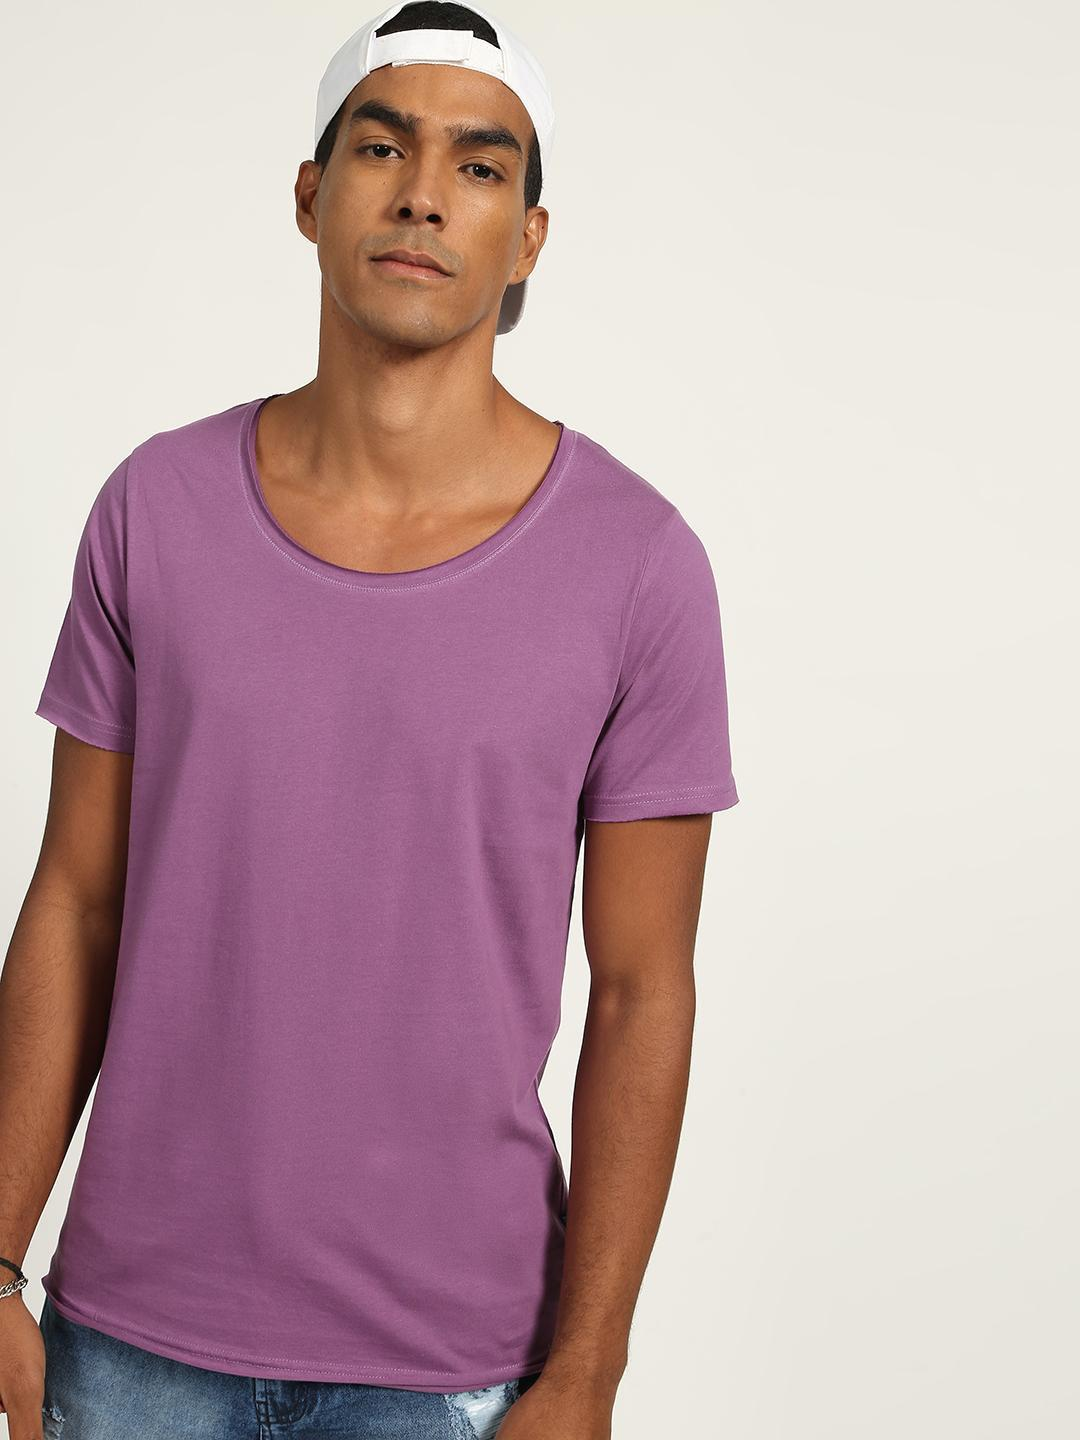 Blue Saint Purple Scoop Neck T-shirt 1